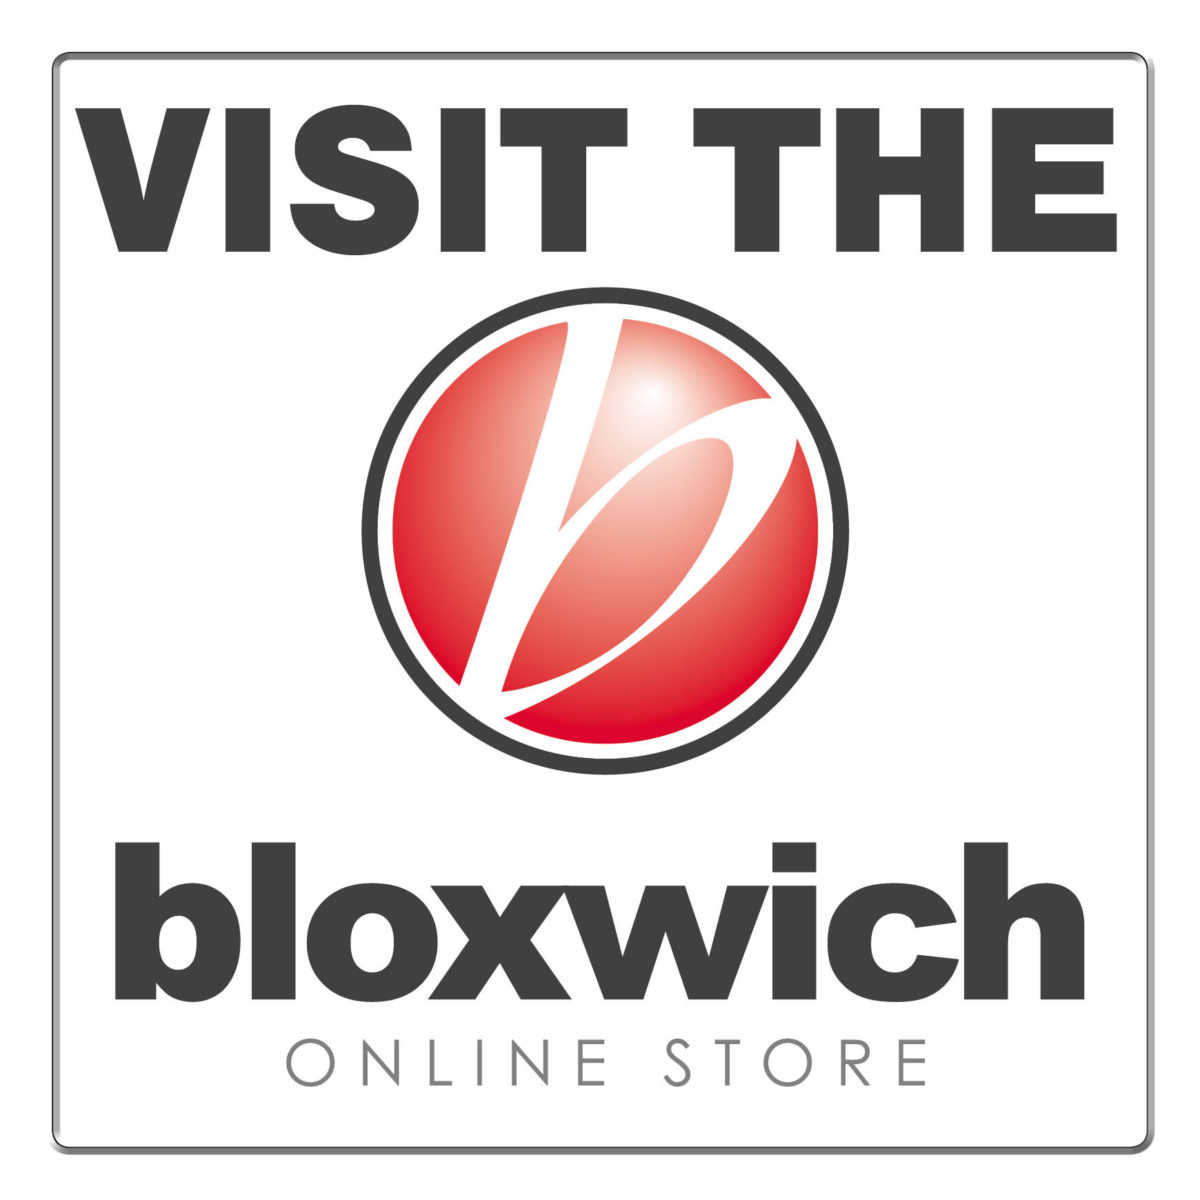 Visit the bloxwich online store website icon